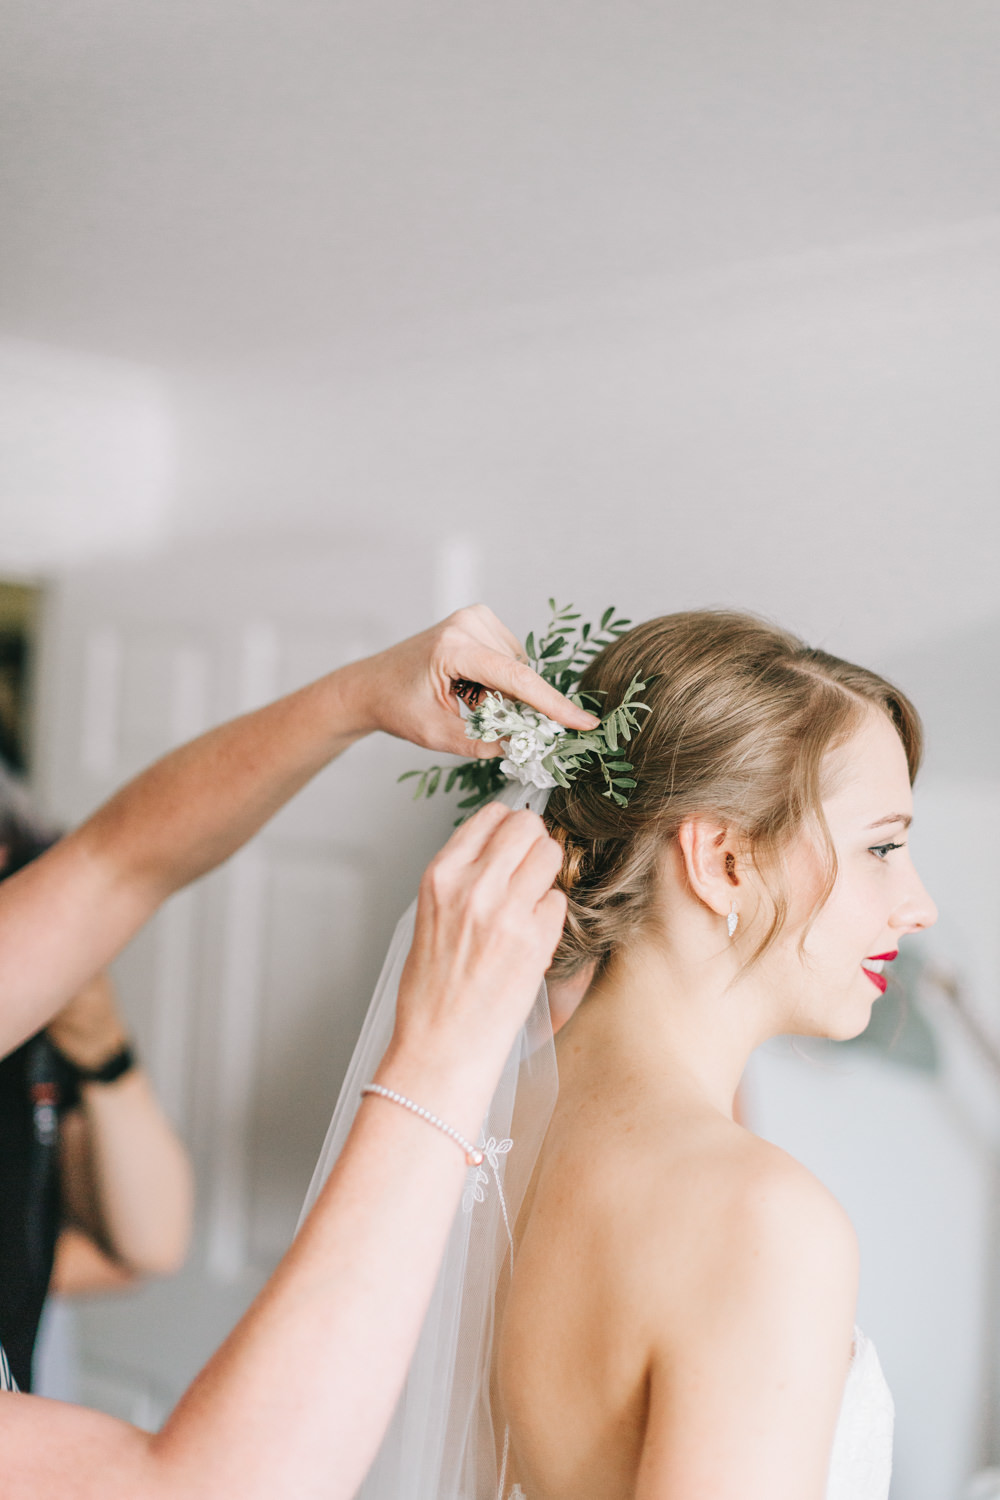 Flowers Hair Bride Bridal Veil Style Up Do Healey Barn Wedding Amy Lou Photography